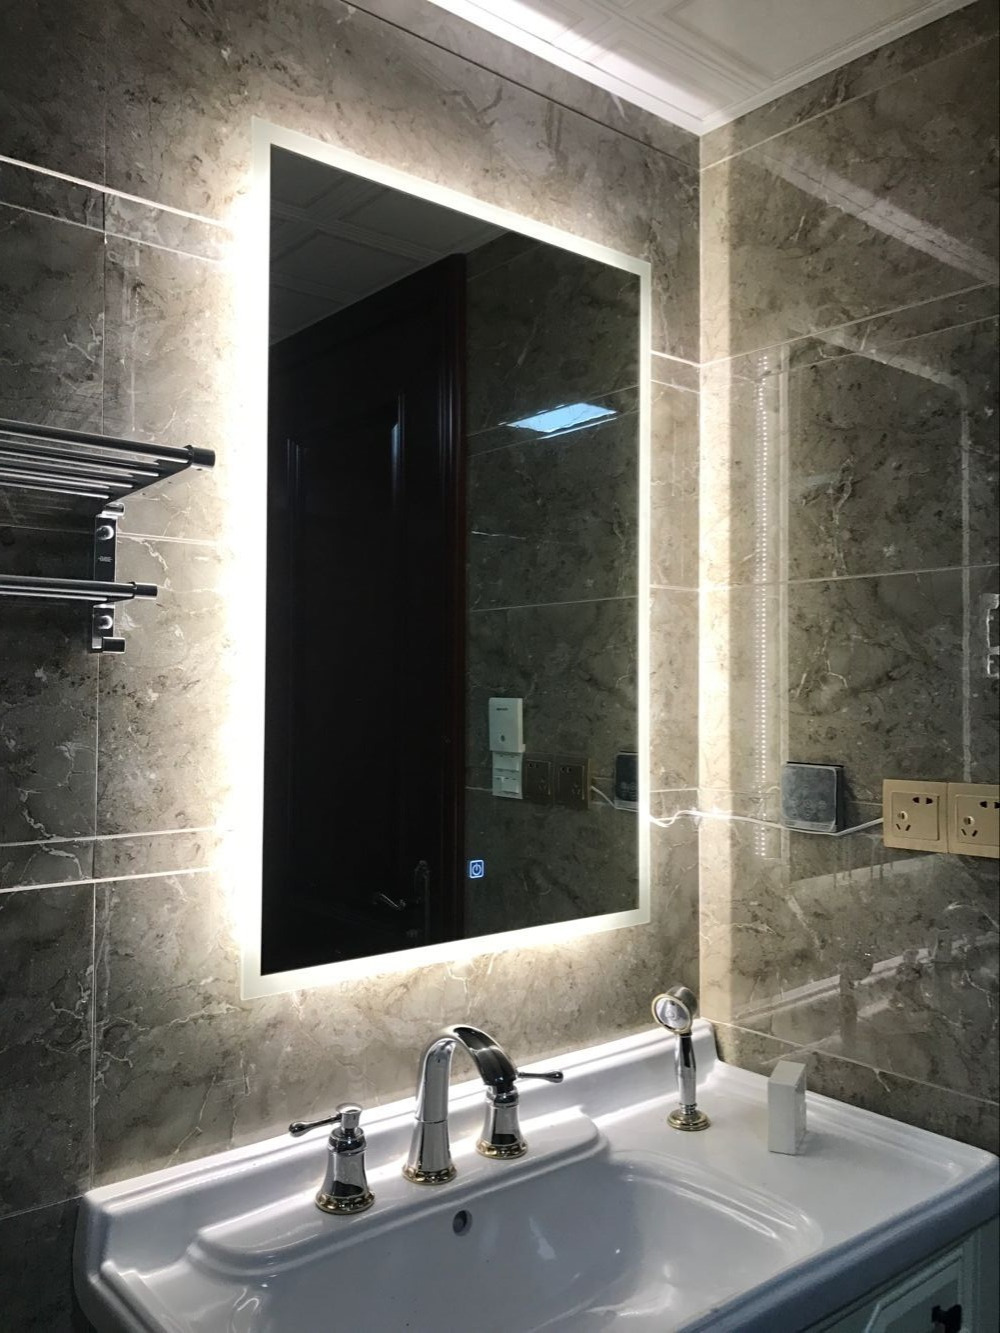 DIYHD Box Diffusers Led Backlit Bathroom Mirror Vanity Square Wall Mount Finger Touch Light